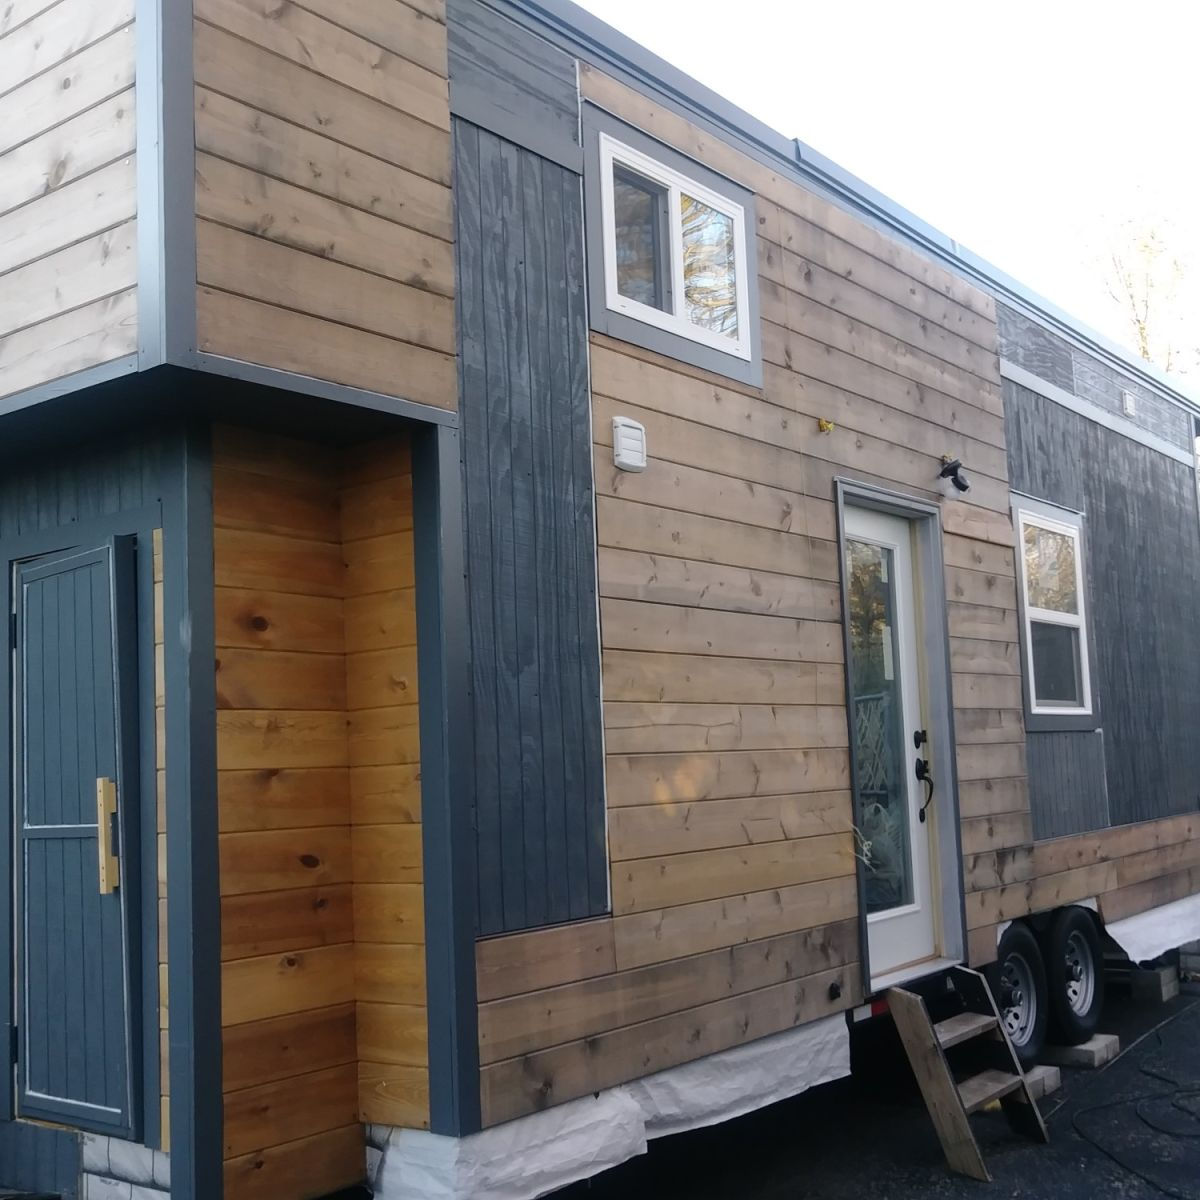 Small House For Rent: Tiny Houses For Sale In Illinois